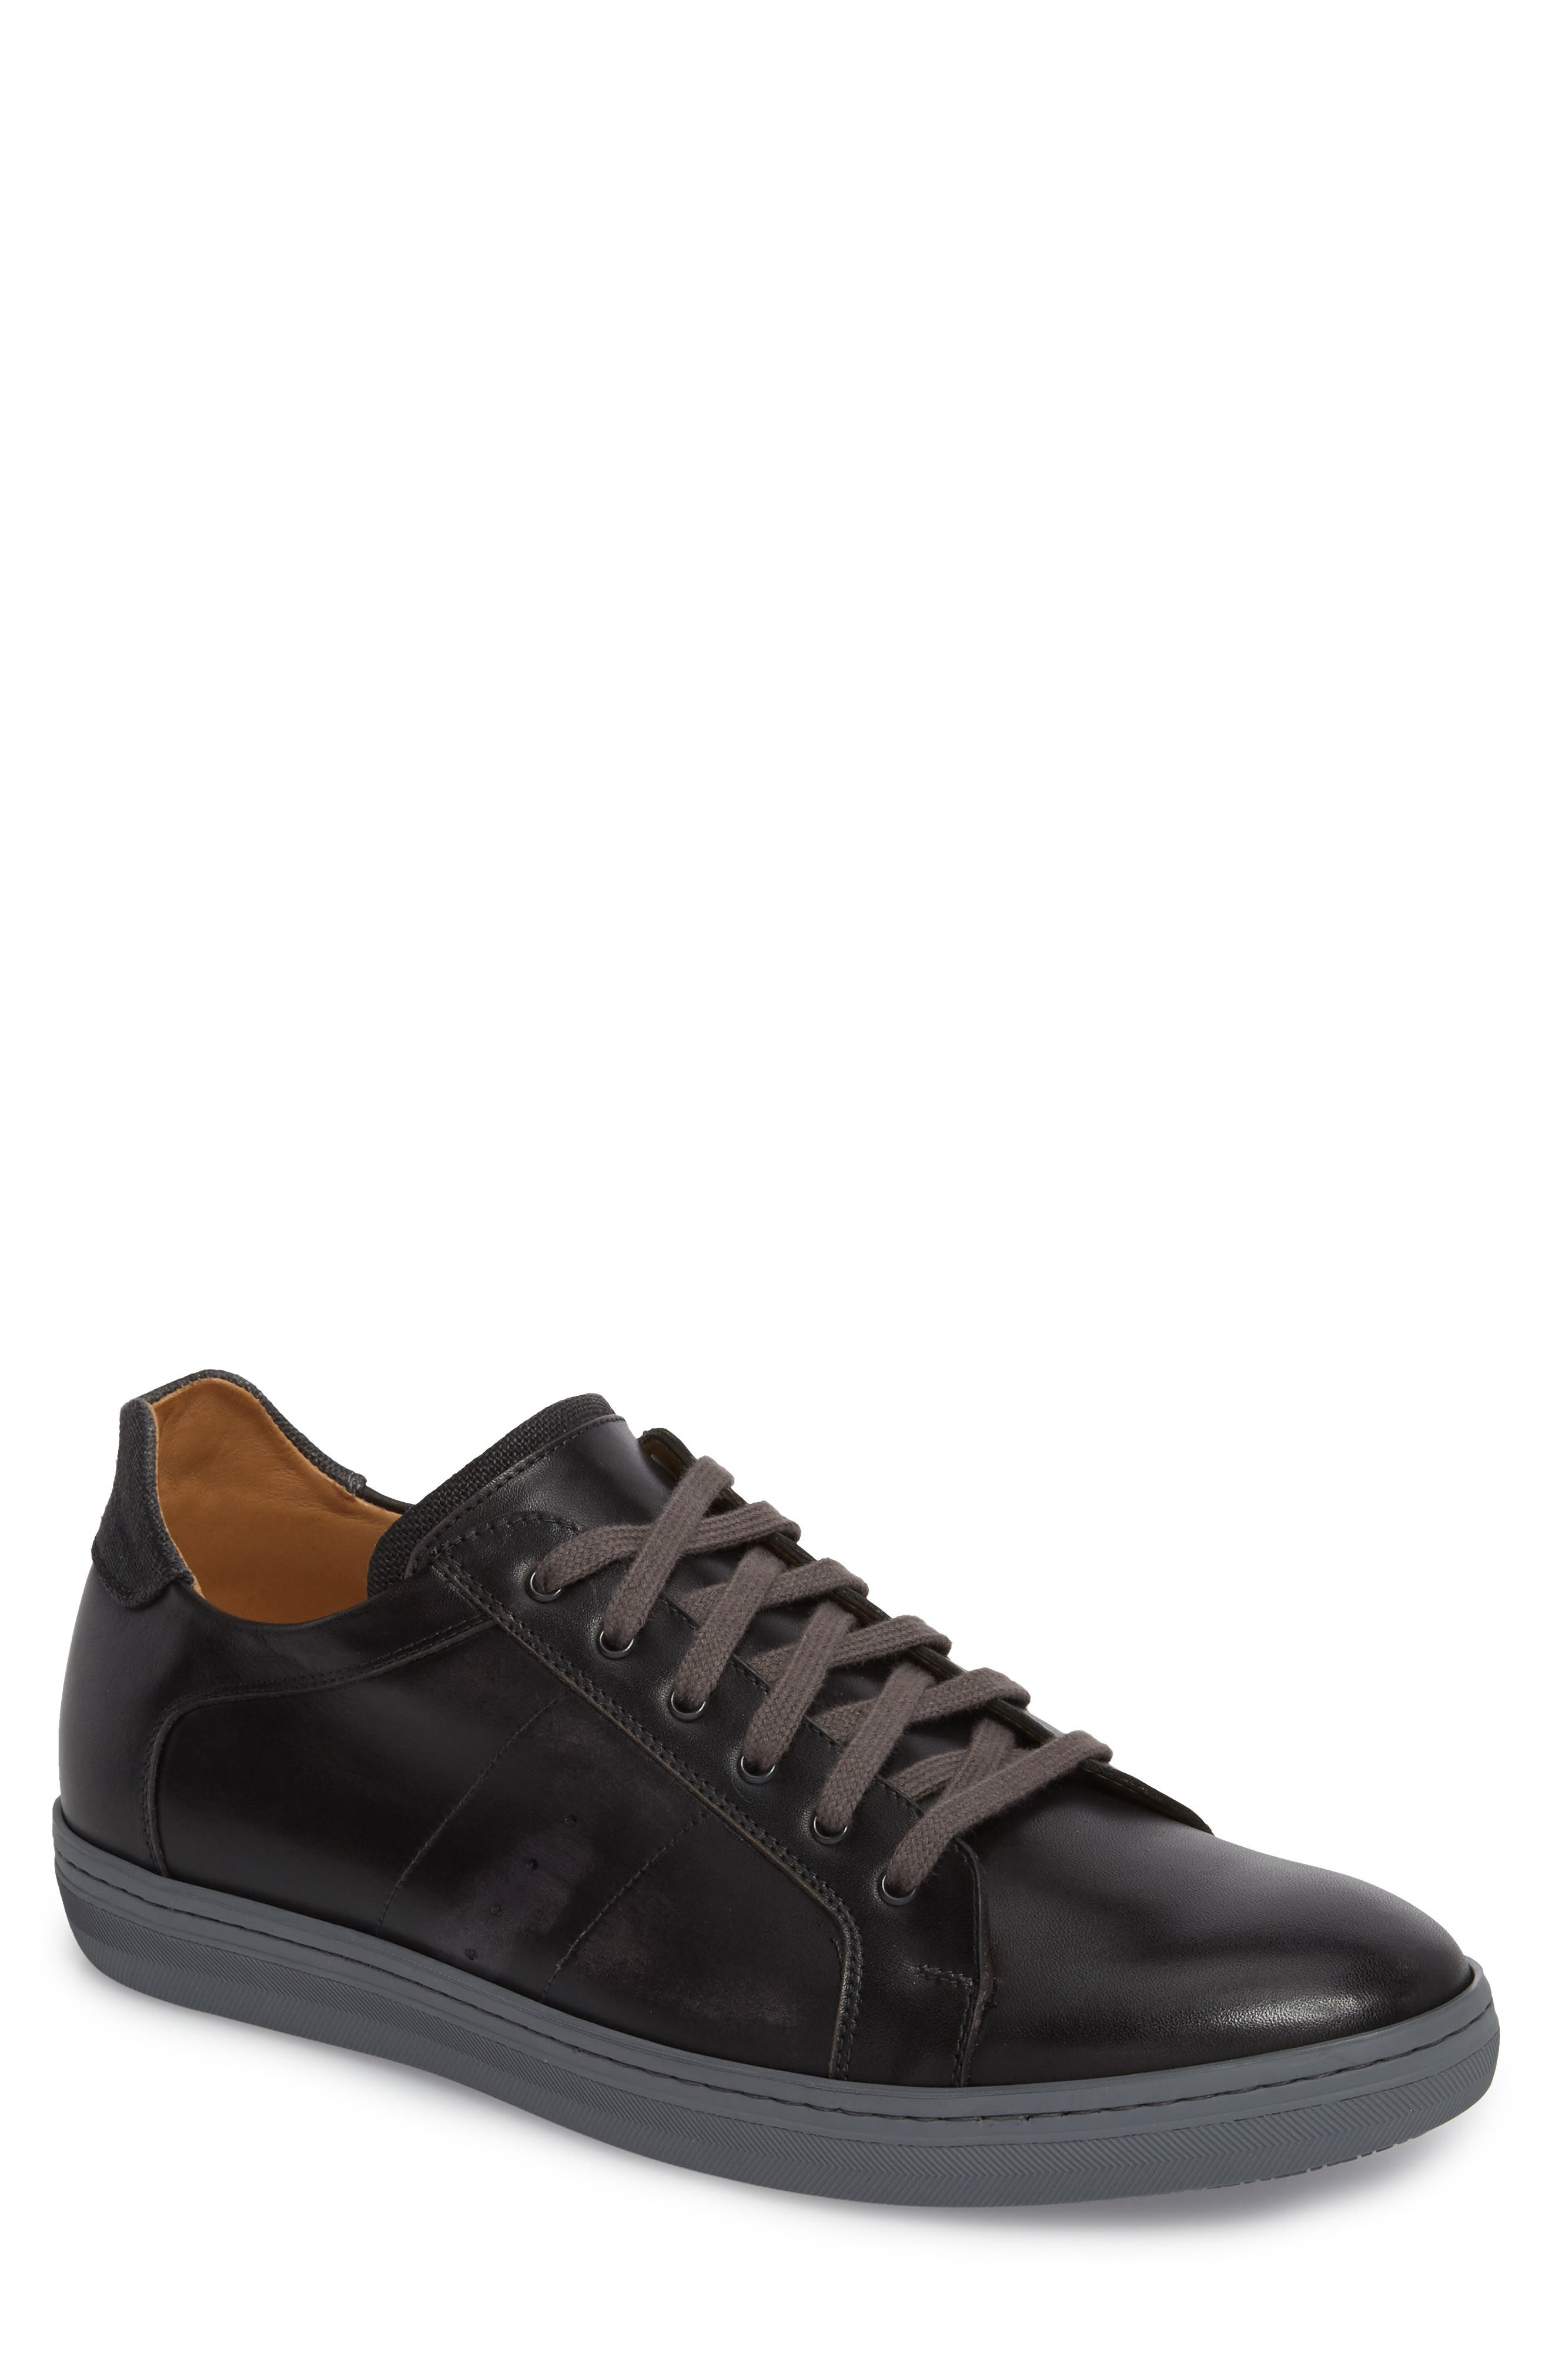 Cuzco Sneaker in Graphite/ Black Leather